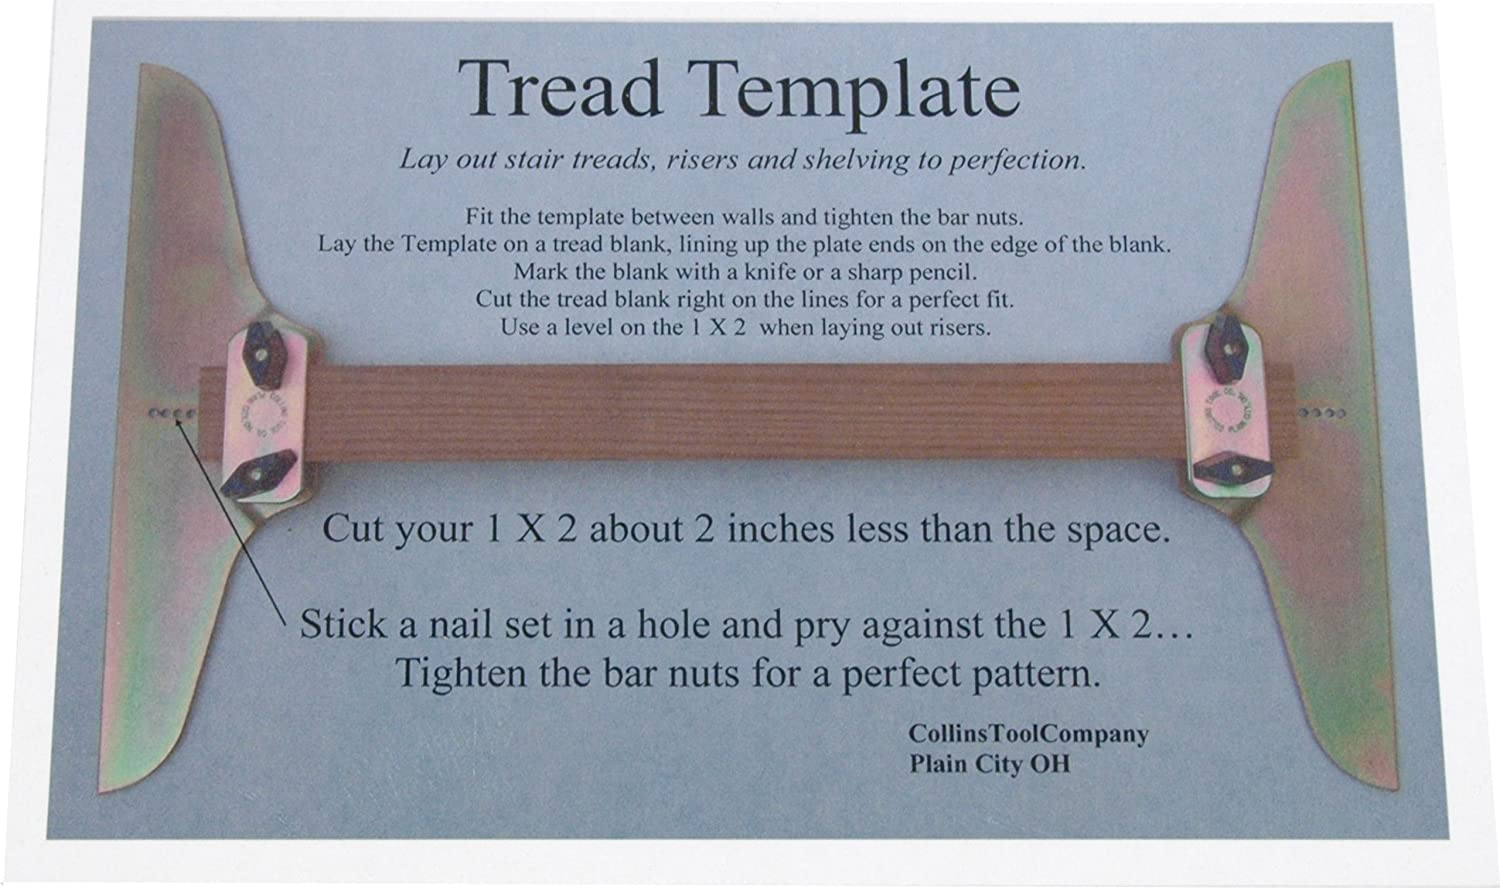 Collins Tool Company Stair Tread Template Set Staircase Step